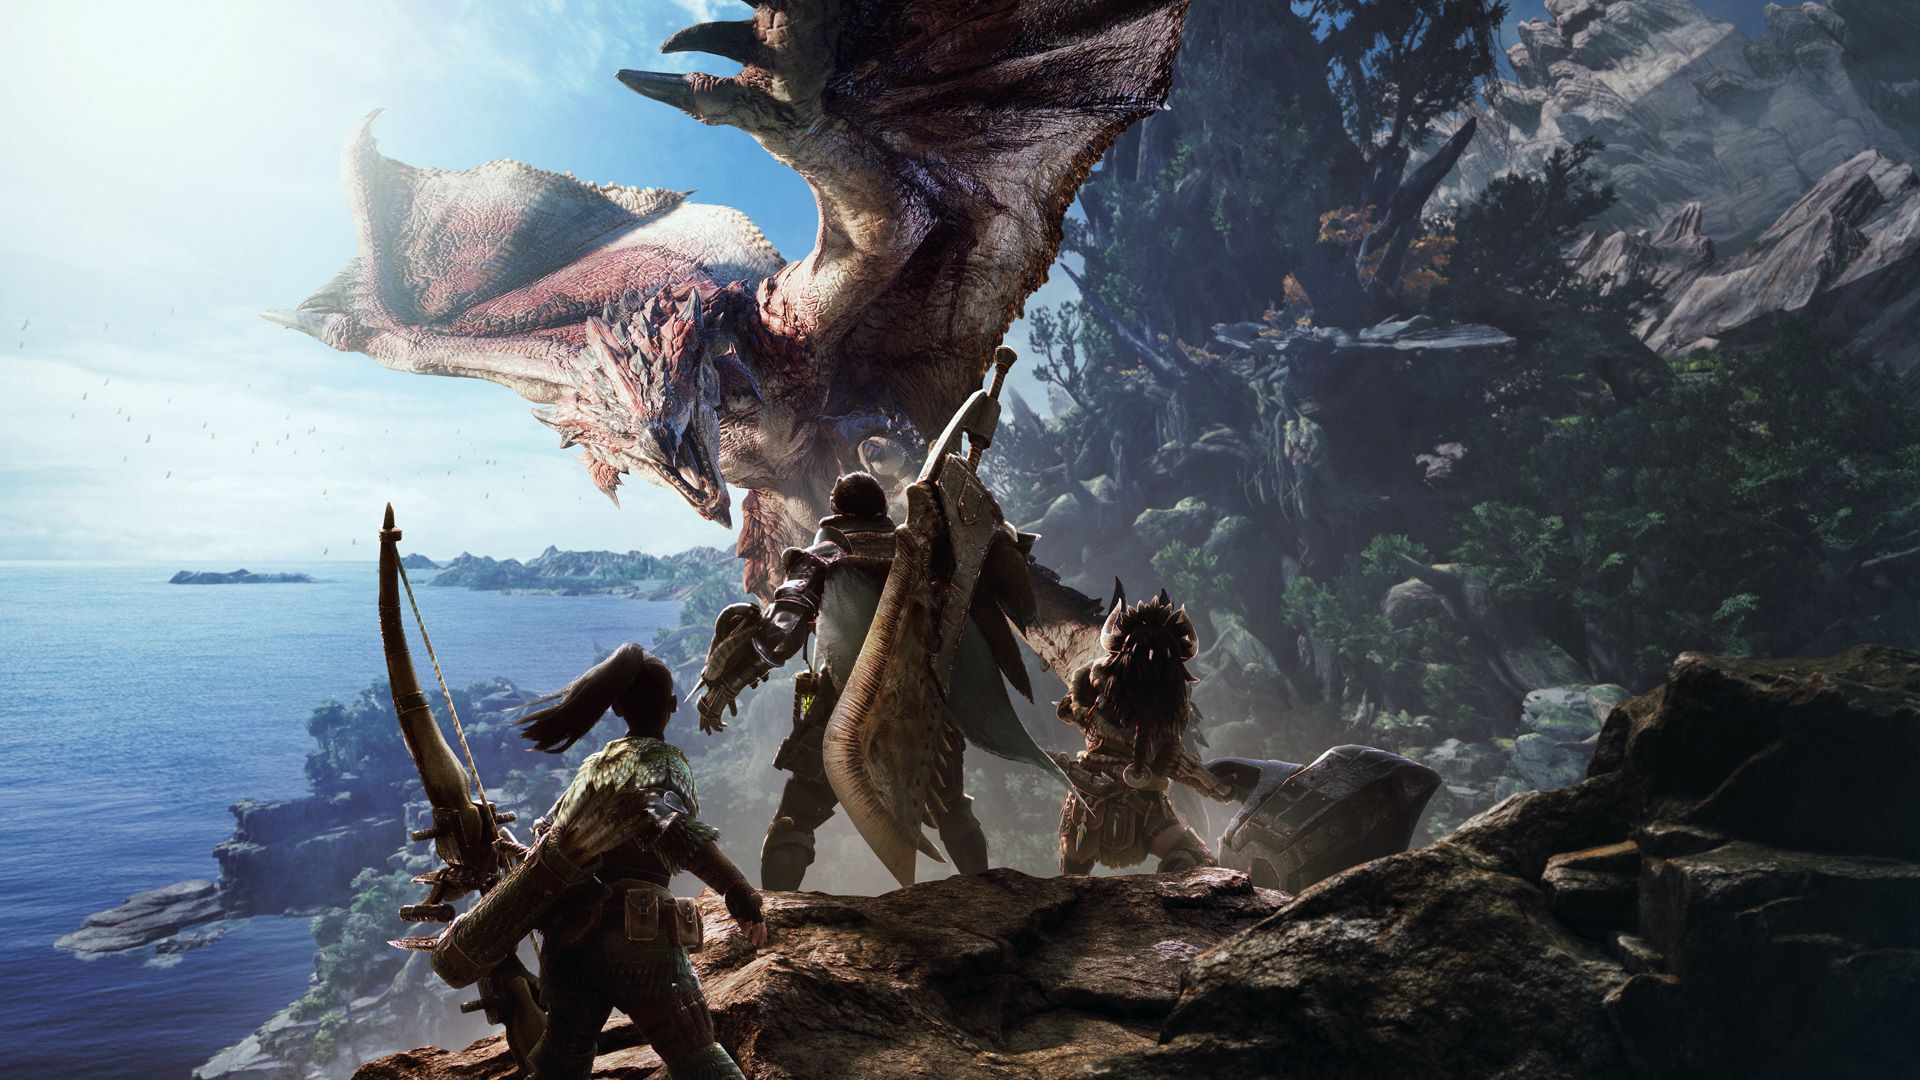 Monster Hunter: World is available for $20 during the Game Days Sale